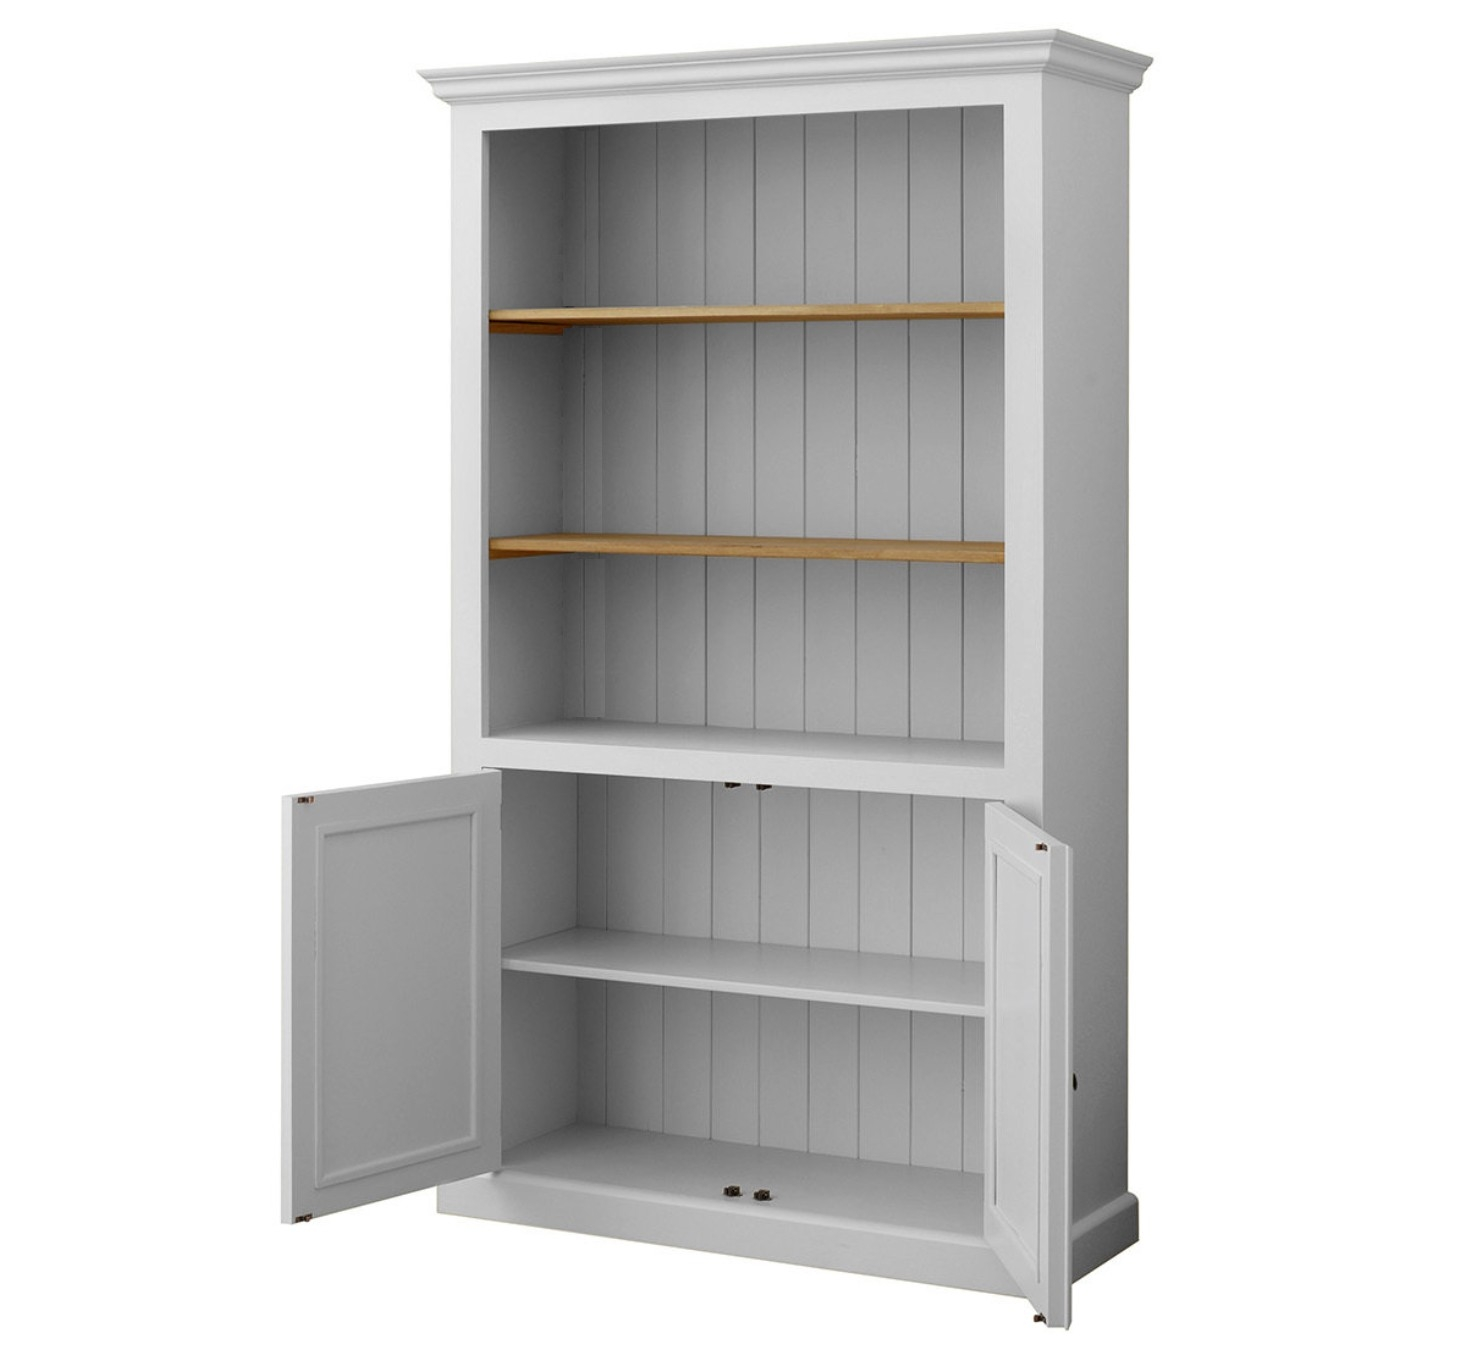 Mottisfont Solid Pine Painted 2 Door Open Bookcase In 3 Sizes Intended For Bookcase With Cupboard (View 10 of 15)